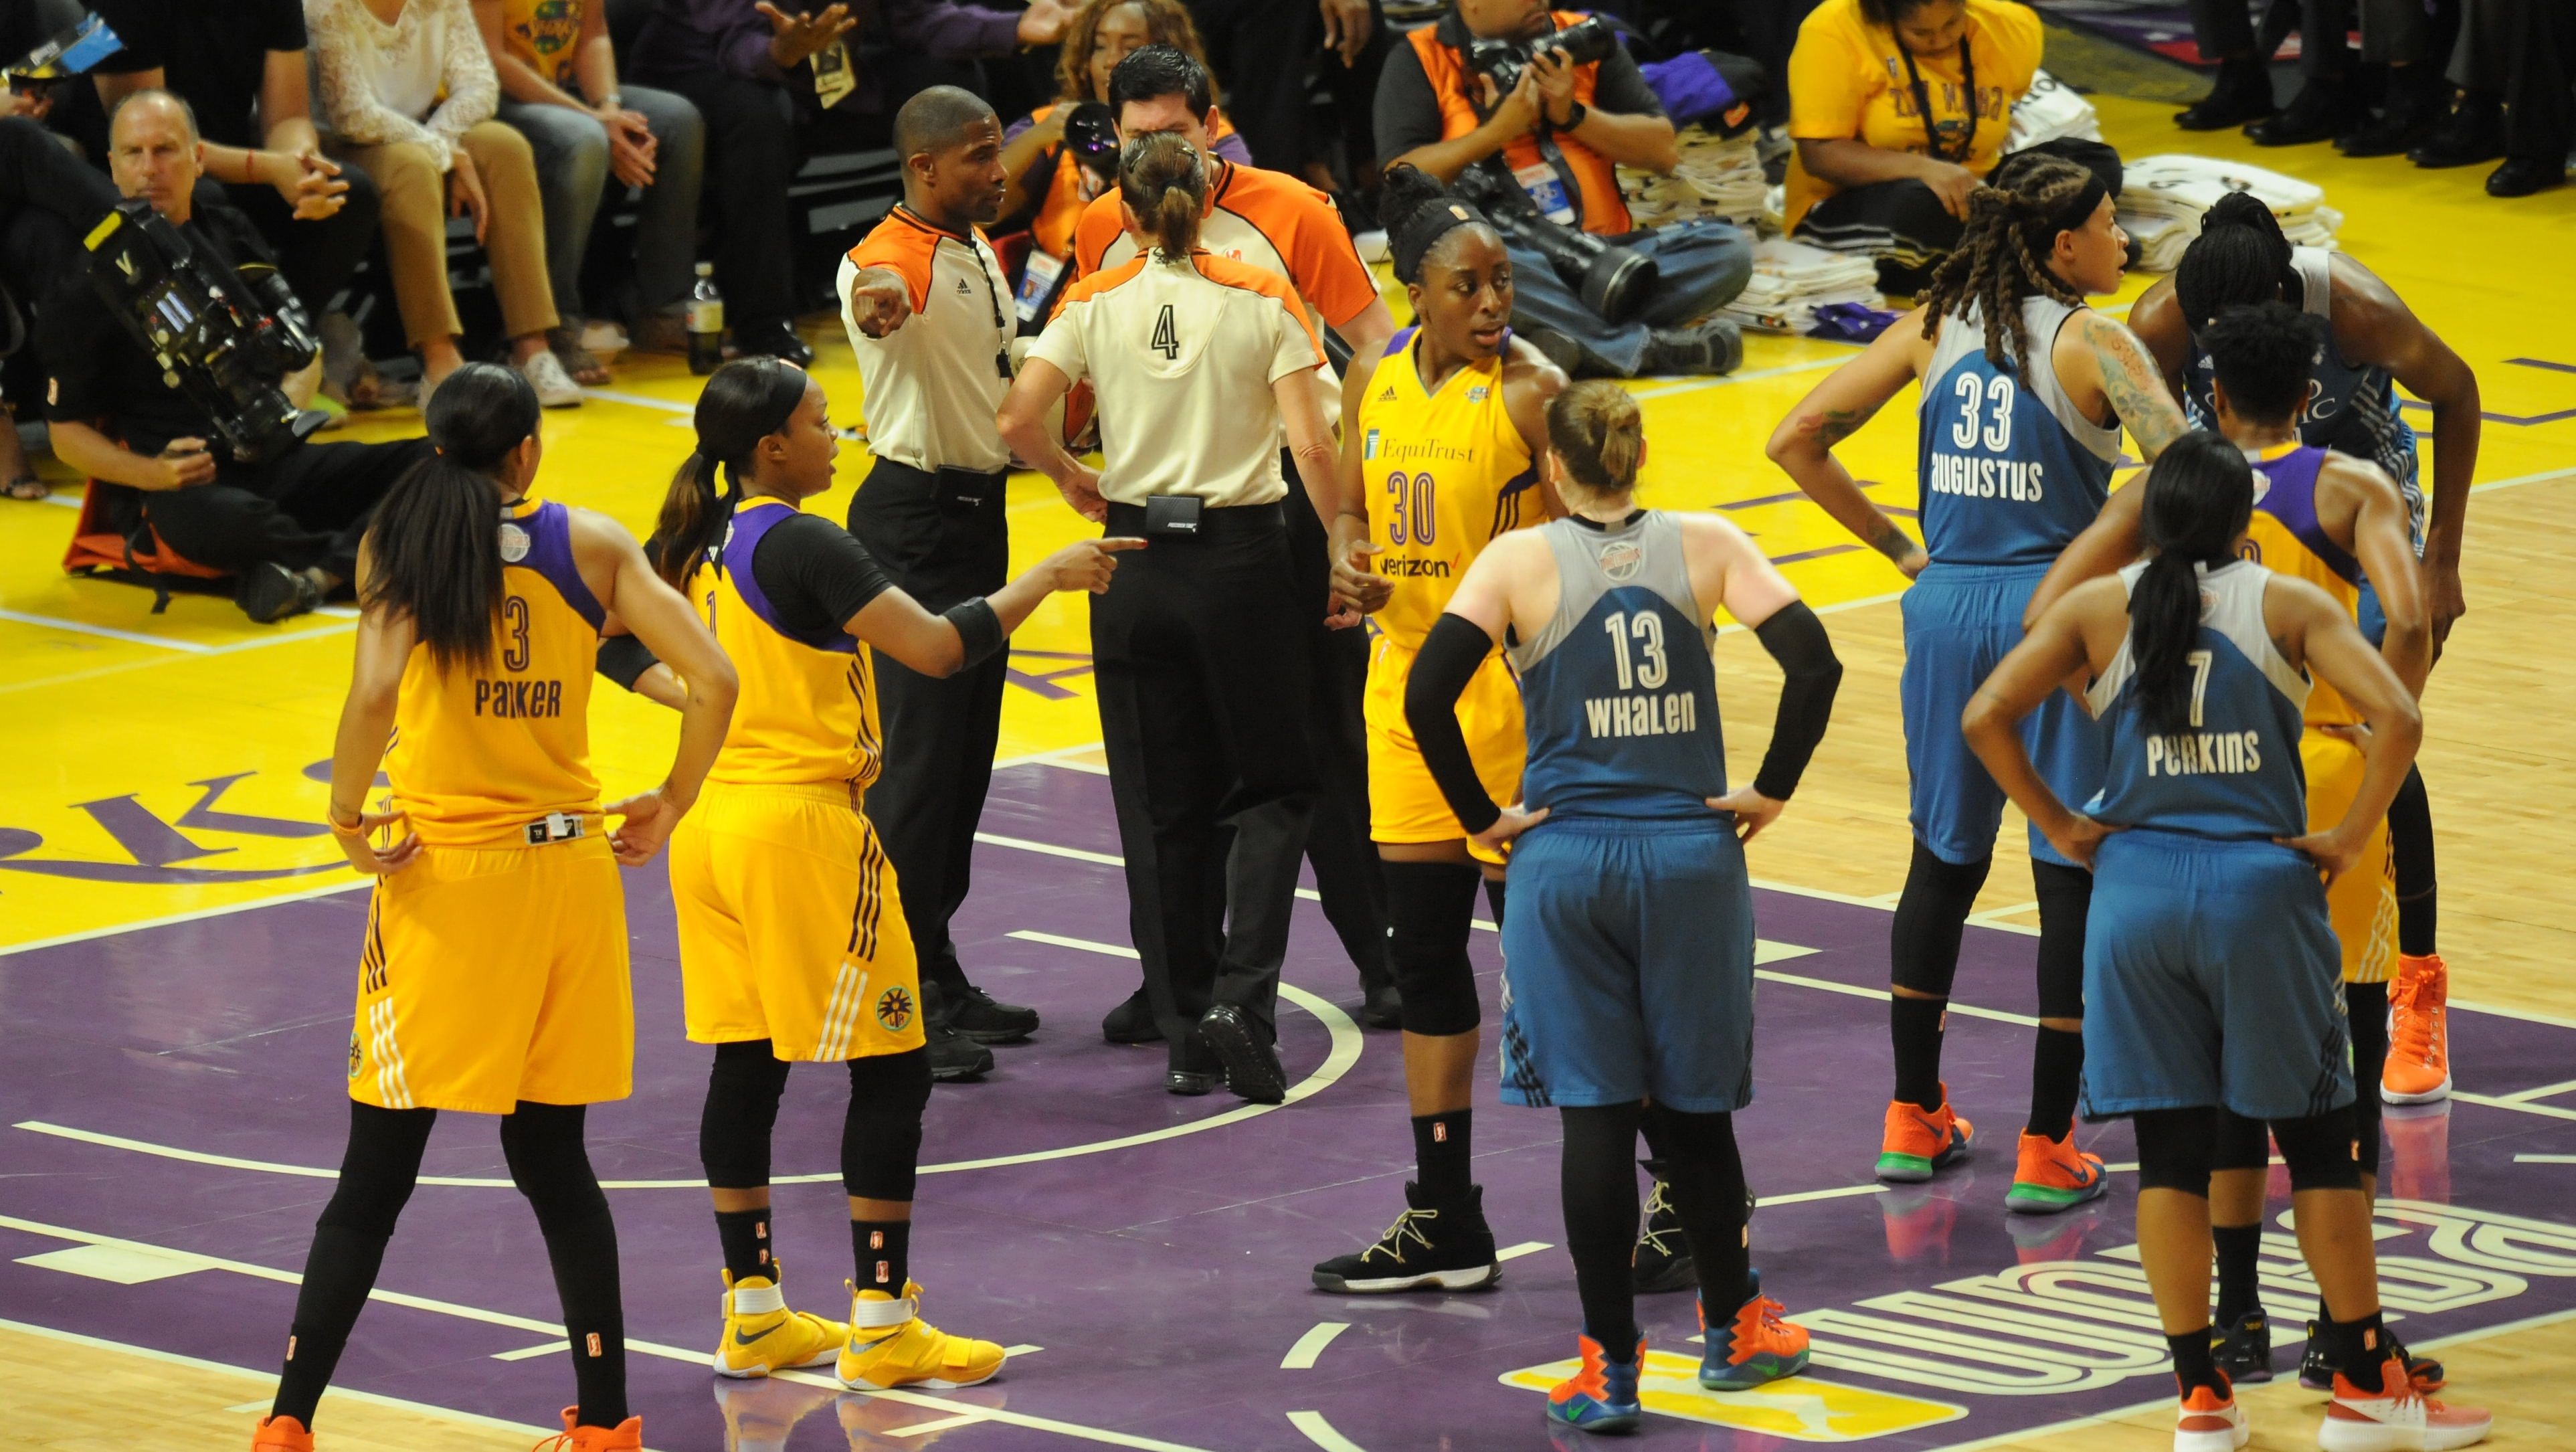 Los Angeles Sparks a win away from 2017 championship, take 2-1 series lead over Minnesota Lynx